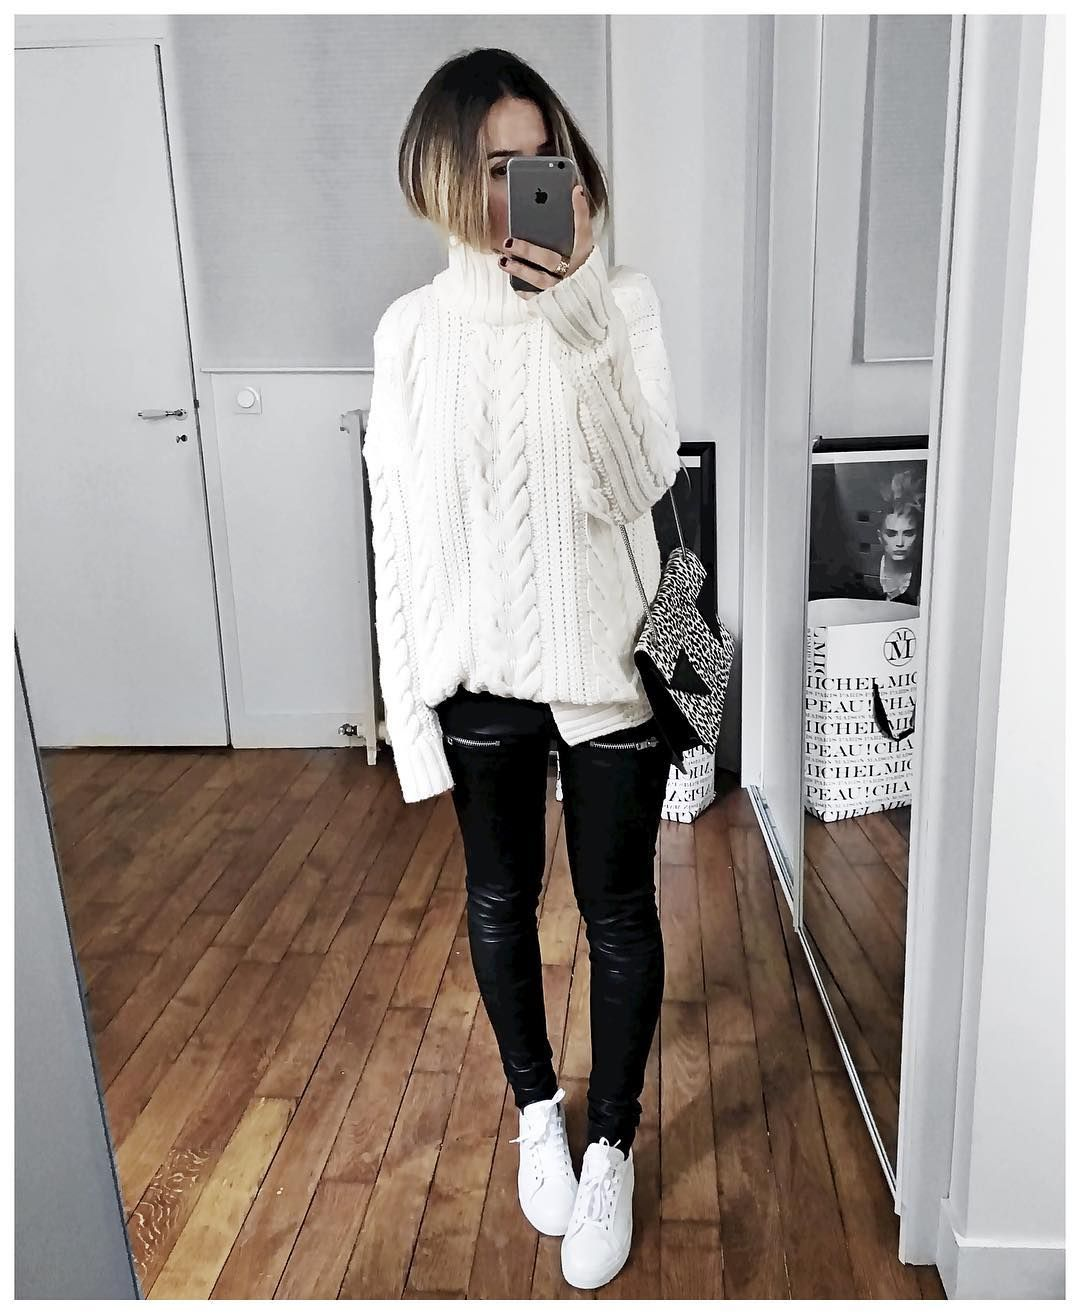 daily outfits iphone 6s only sushipedro winter style pinterest mode outfit. Black Bedroom Furniture Sets. Home Design Ideas